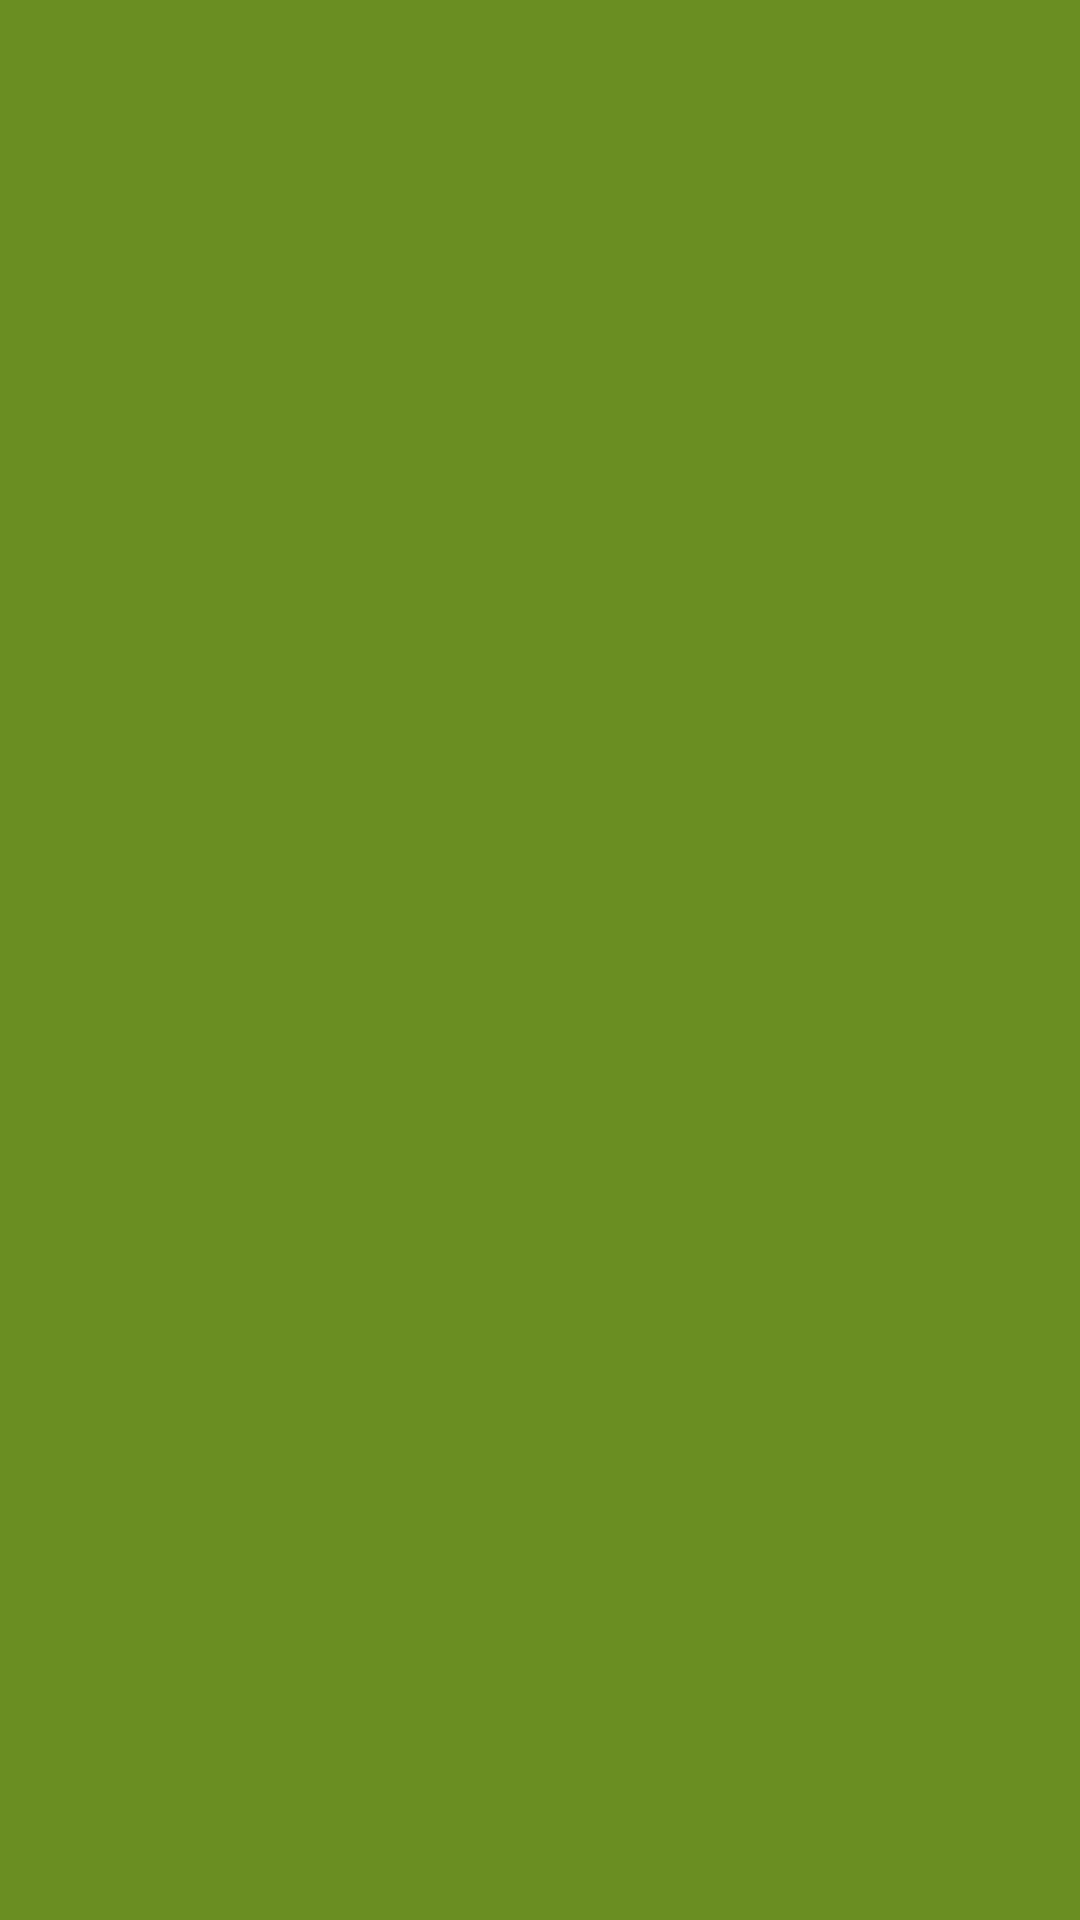 1080x1920 Olive Drab Number Three Solid Color Background